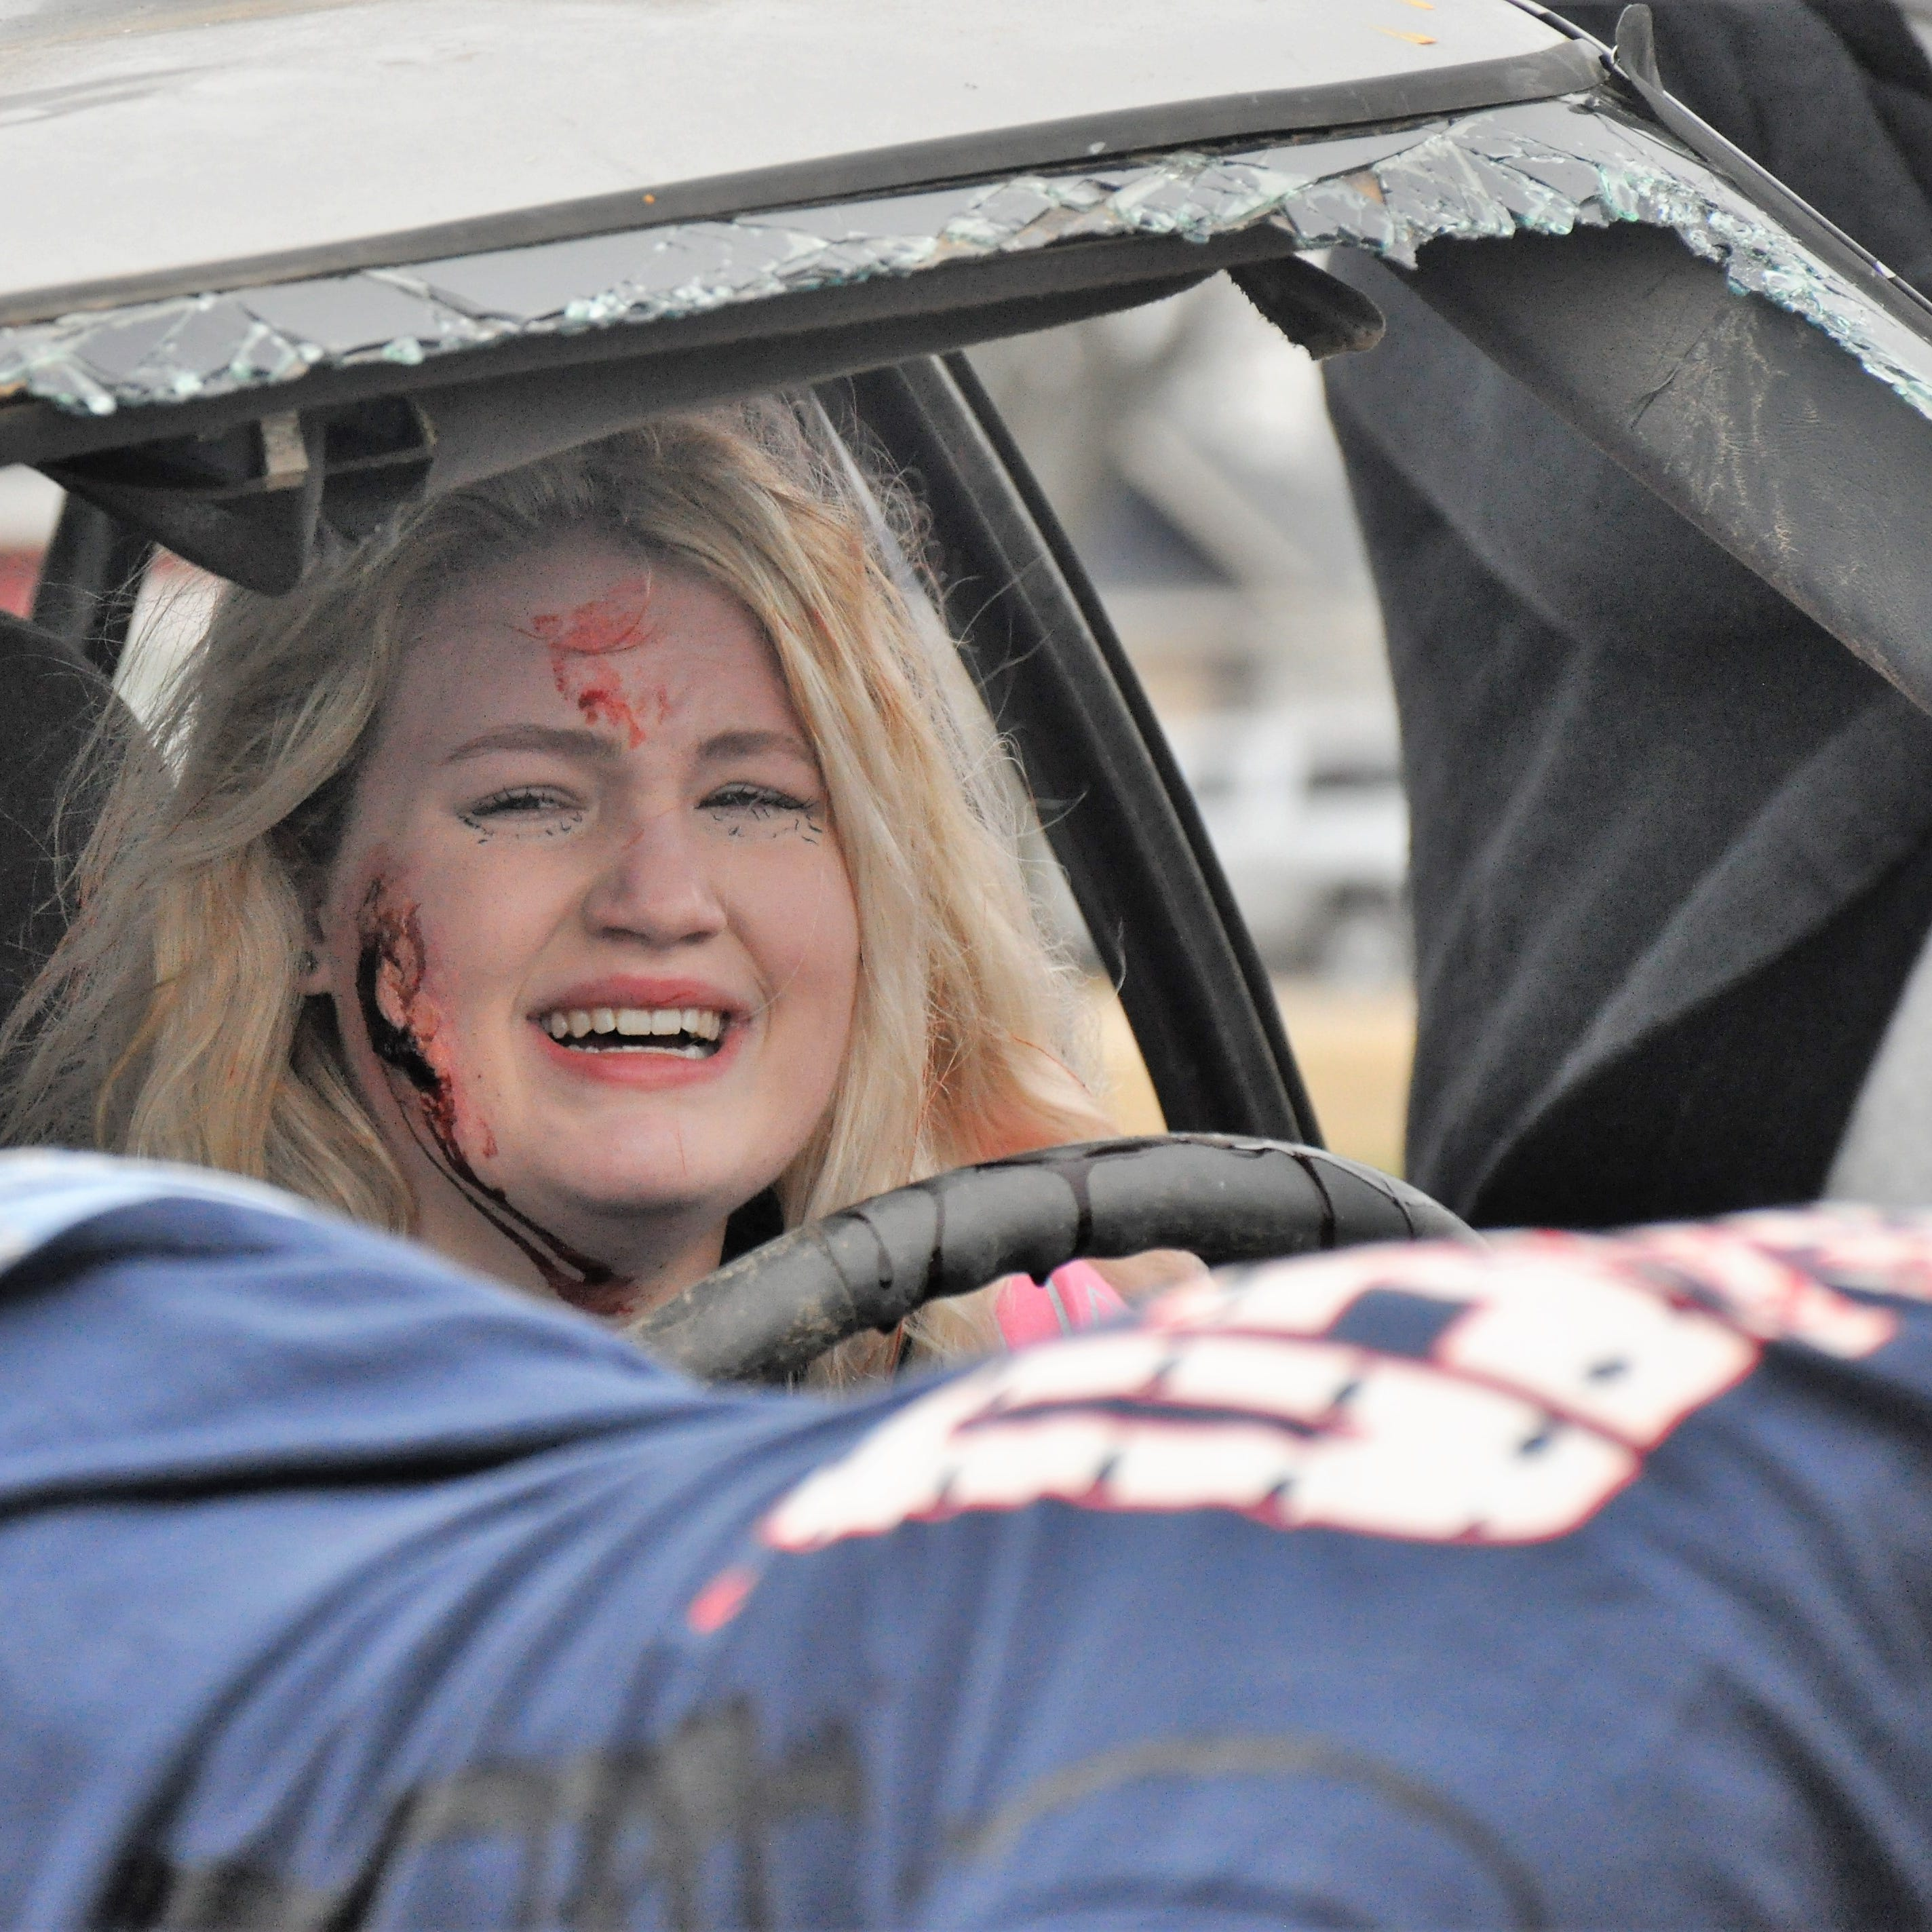 Sobering reality: Jim Ned students experience real emotions after mock crash